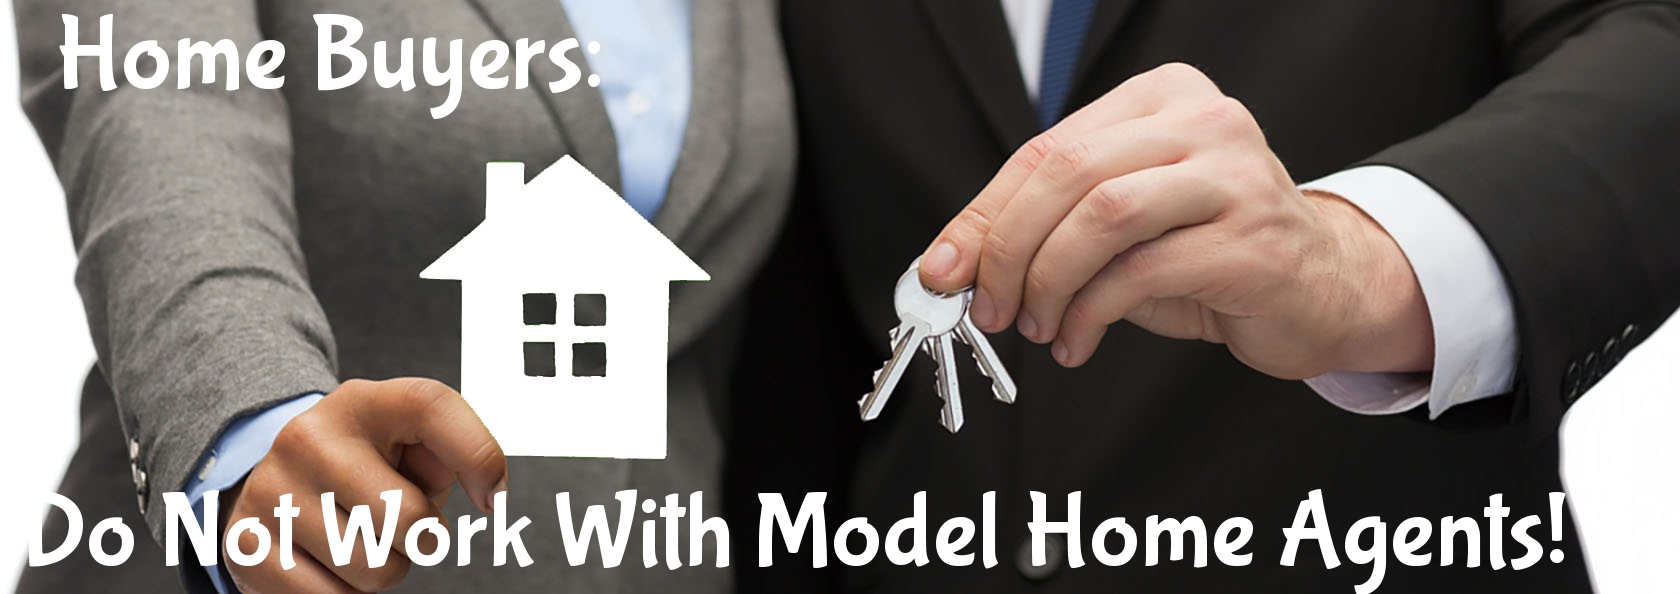 Do not work with model home agents